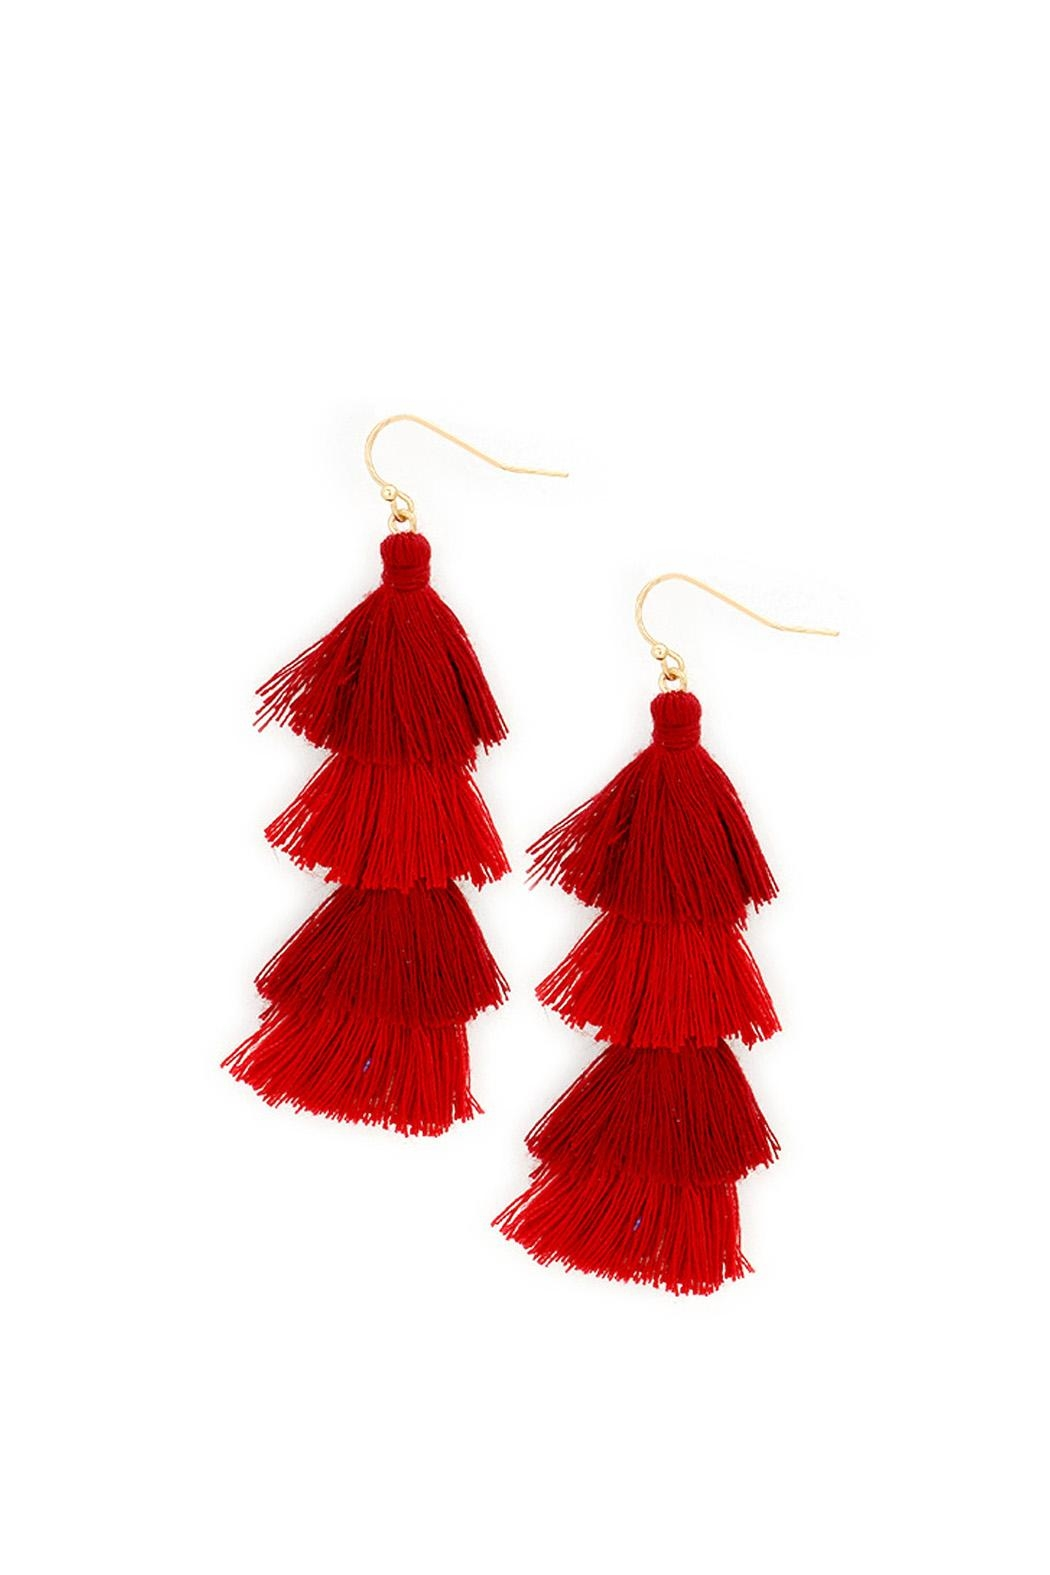 Wild Lilies Jewelry  Red Tassel Earrings - Main Image